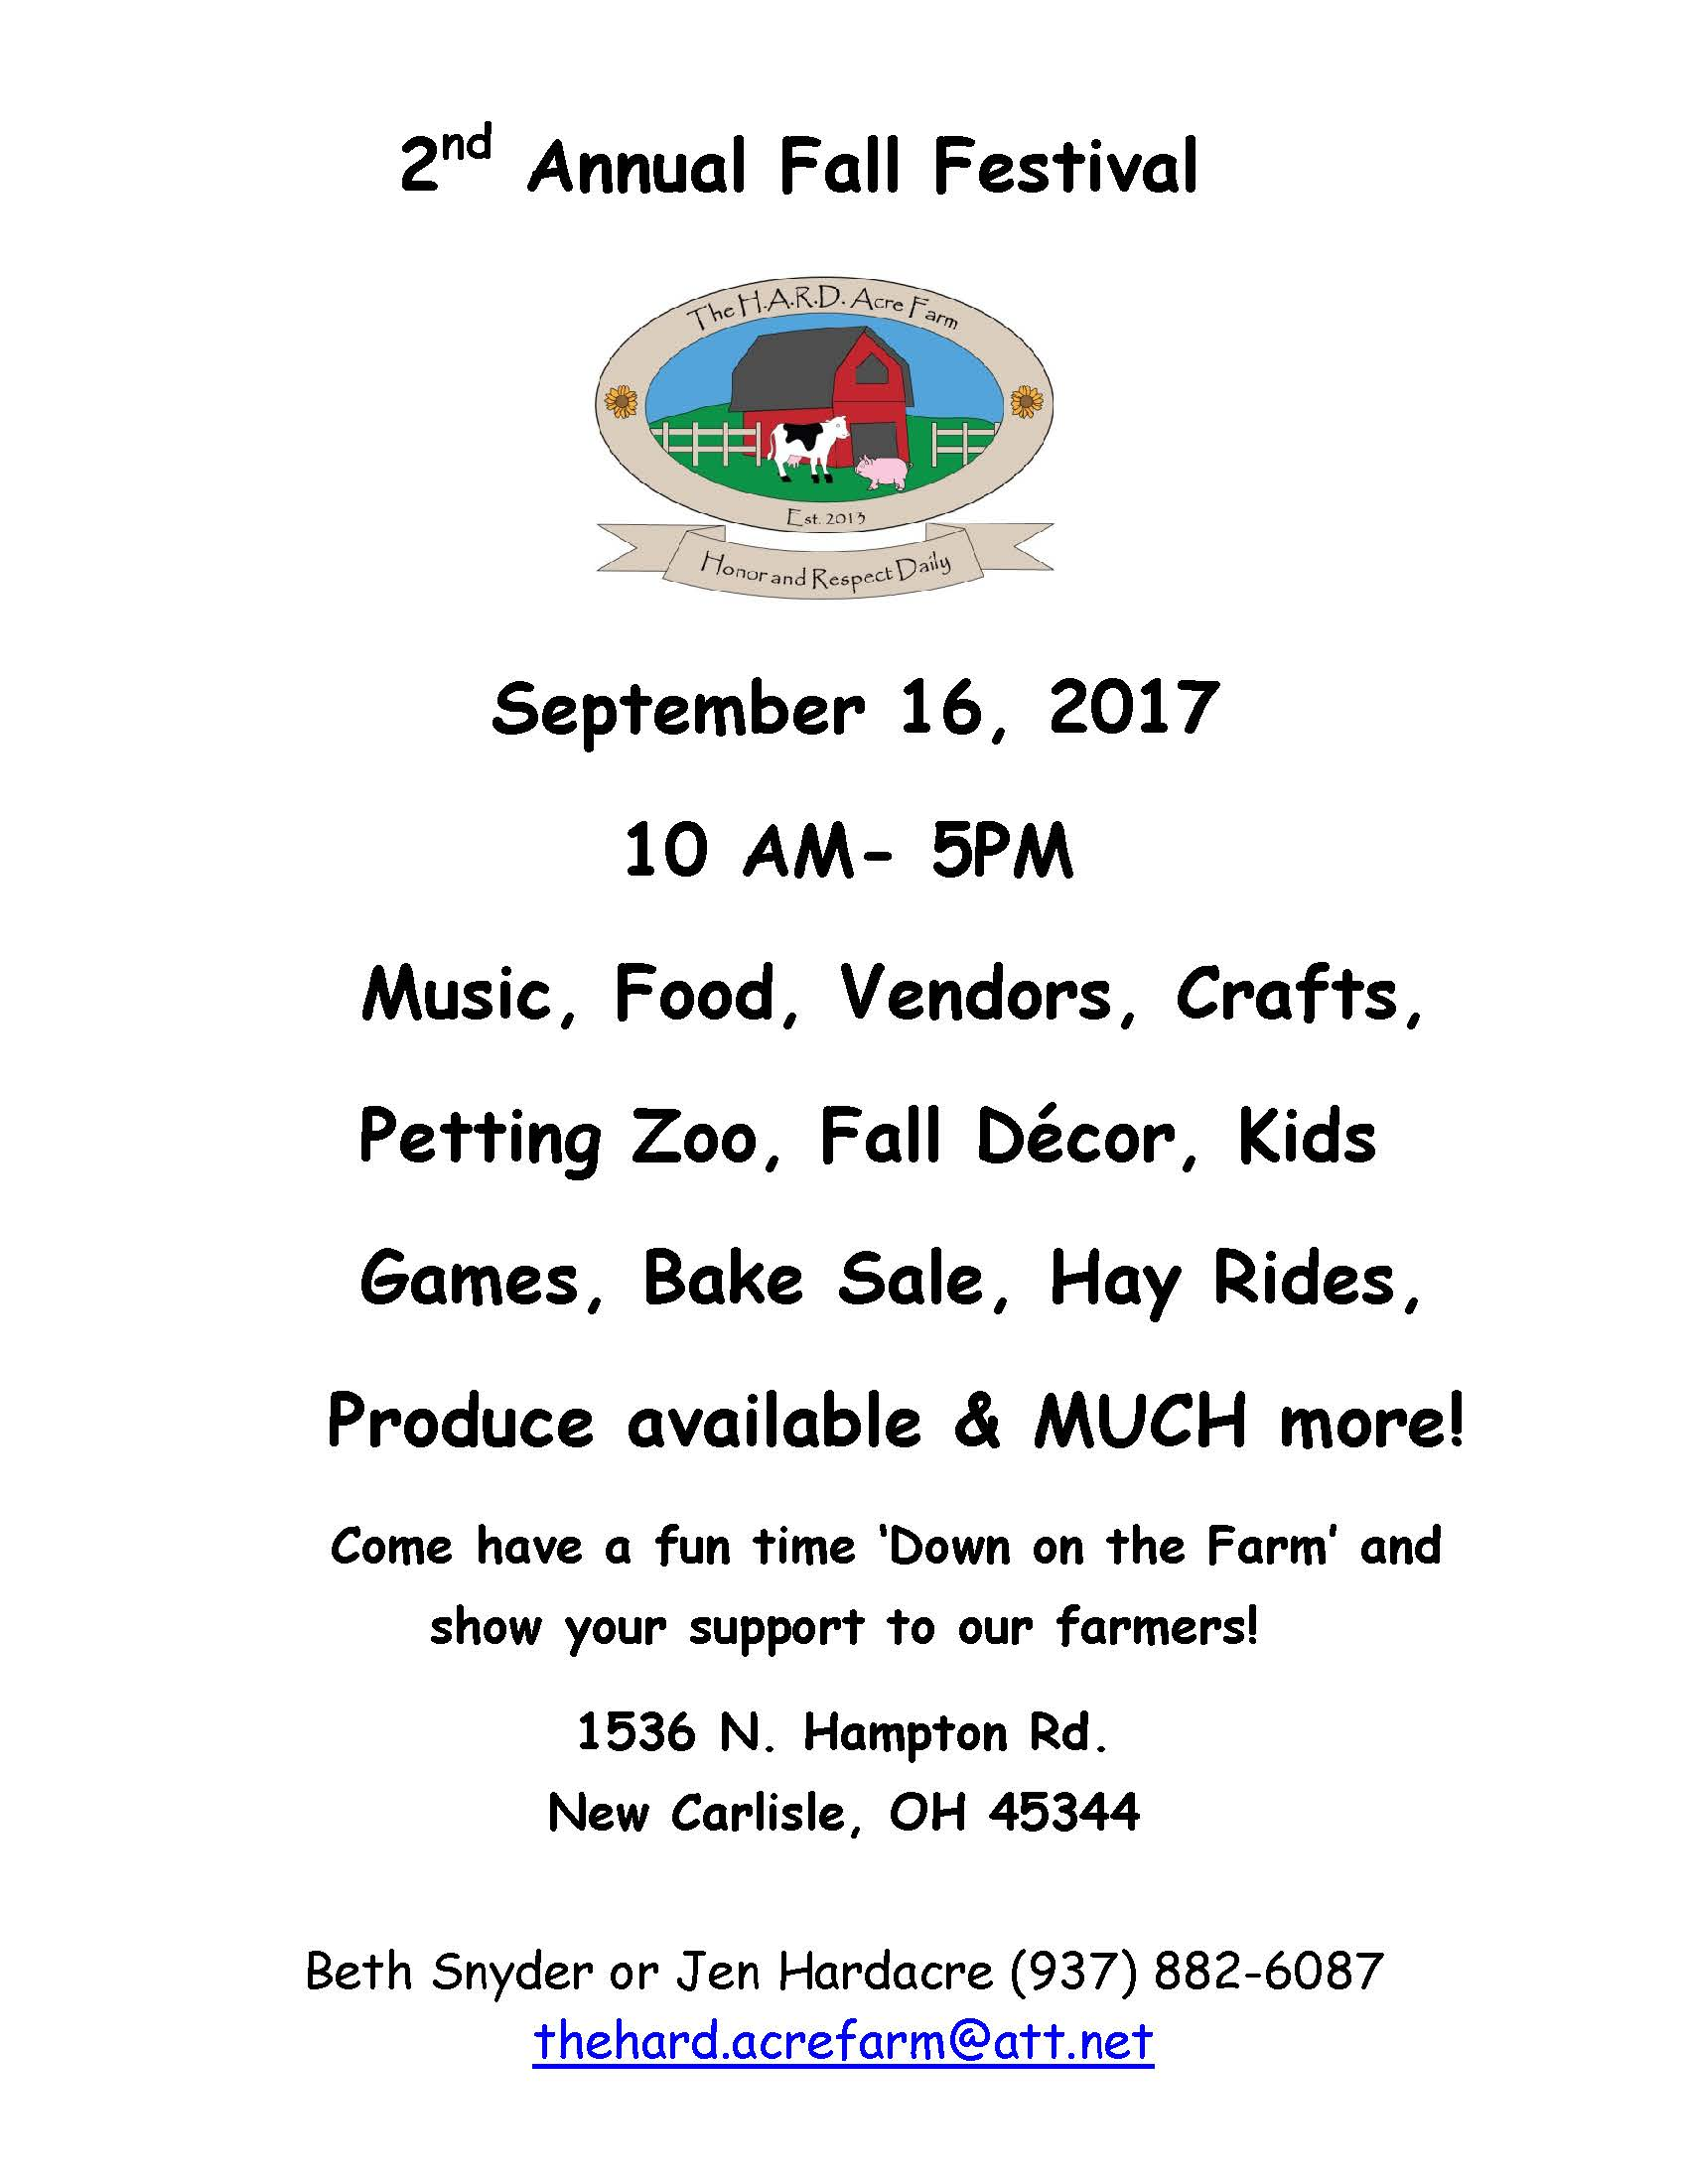 H.A.R.D. Acre Farm-2nd Annual Fall Festival